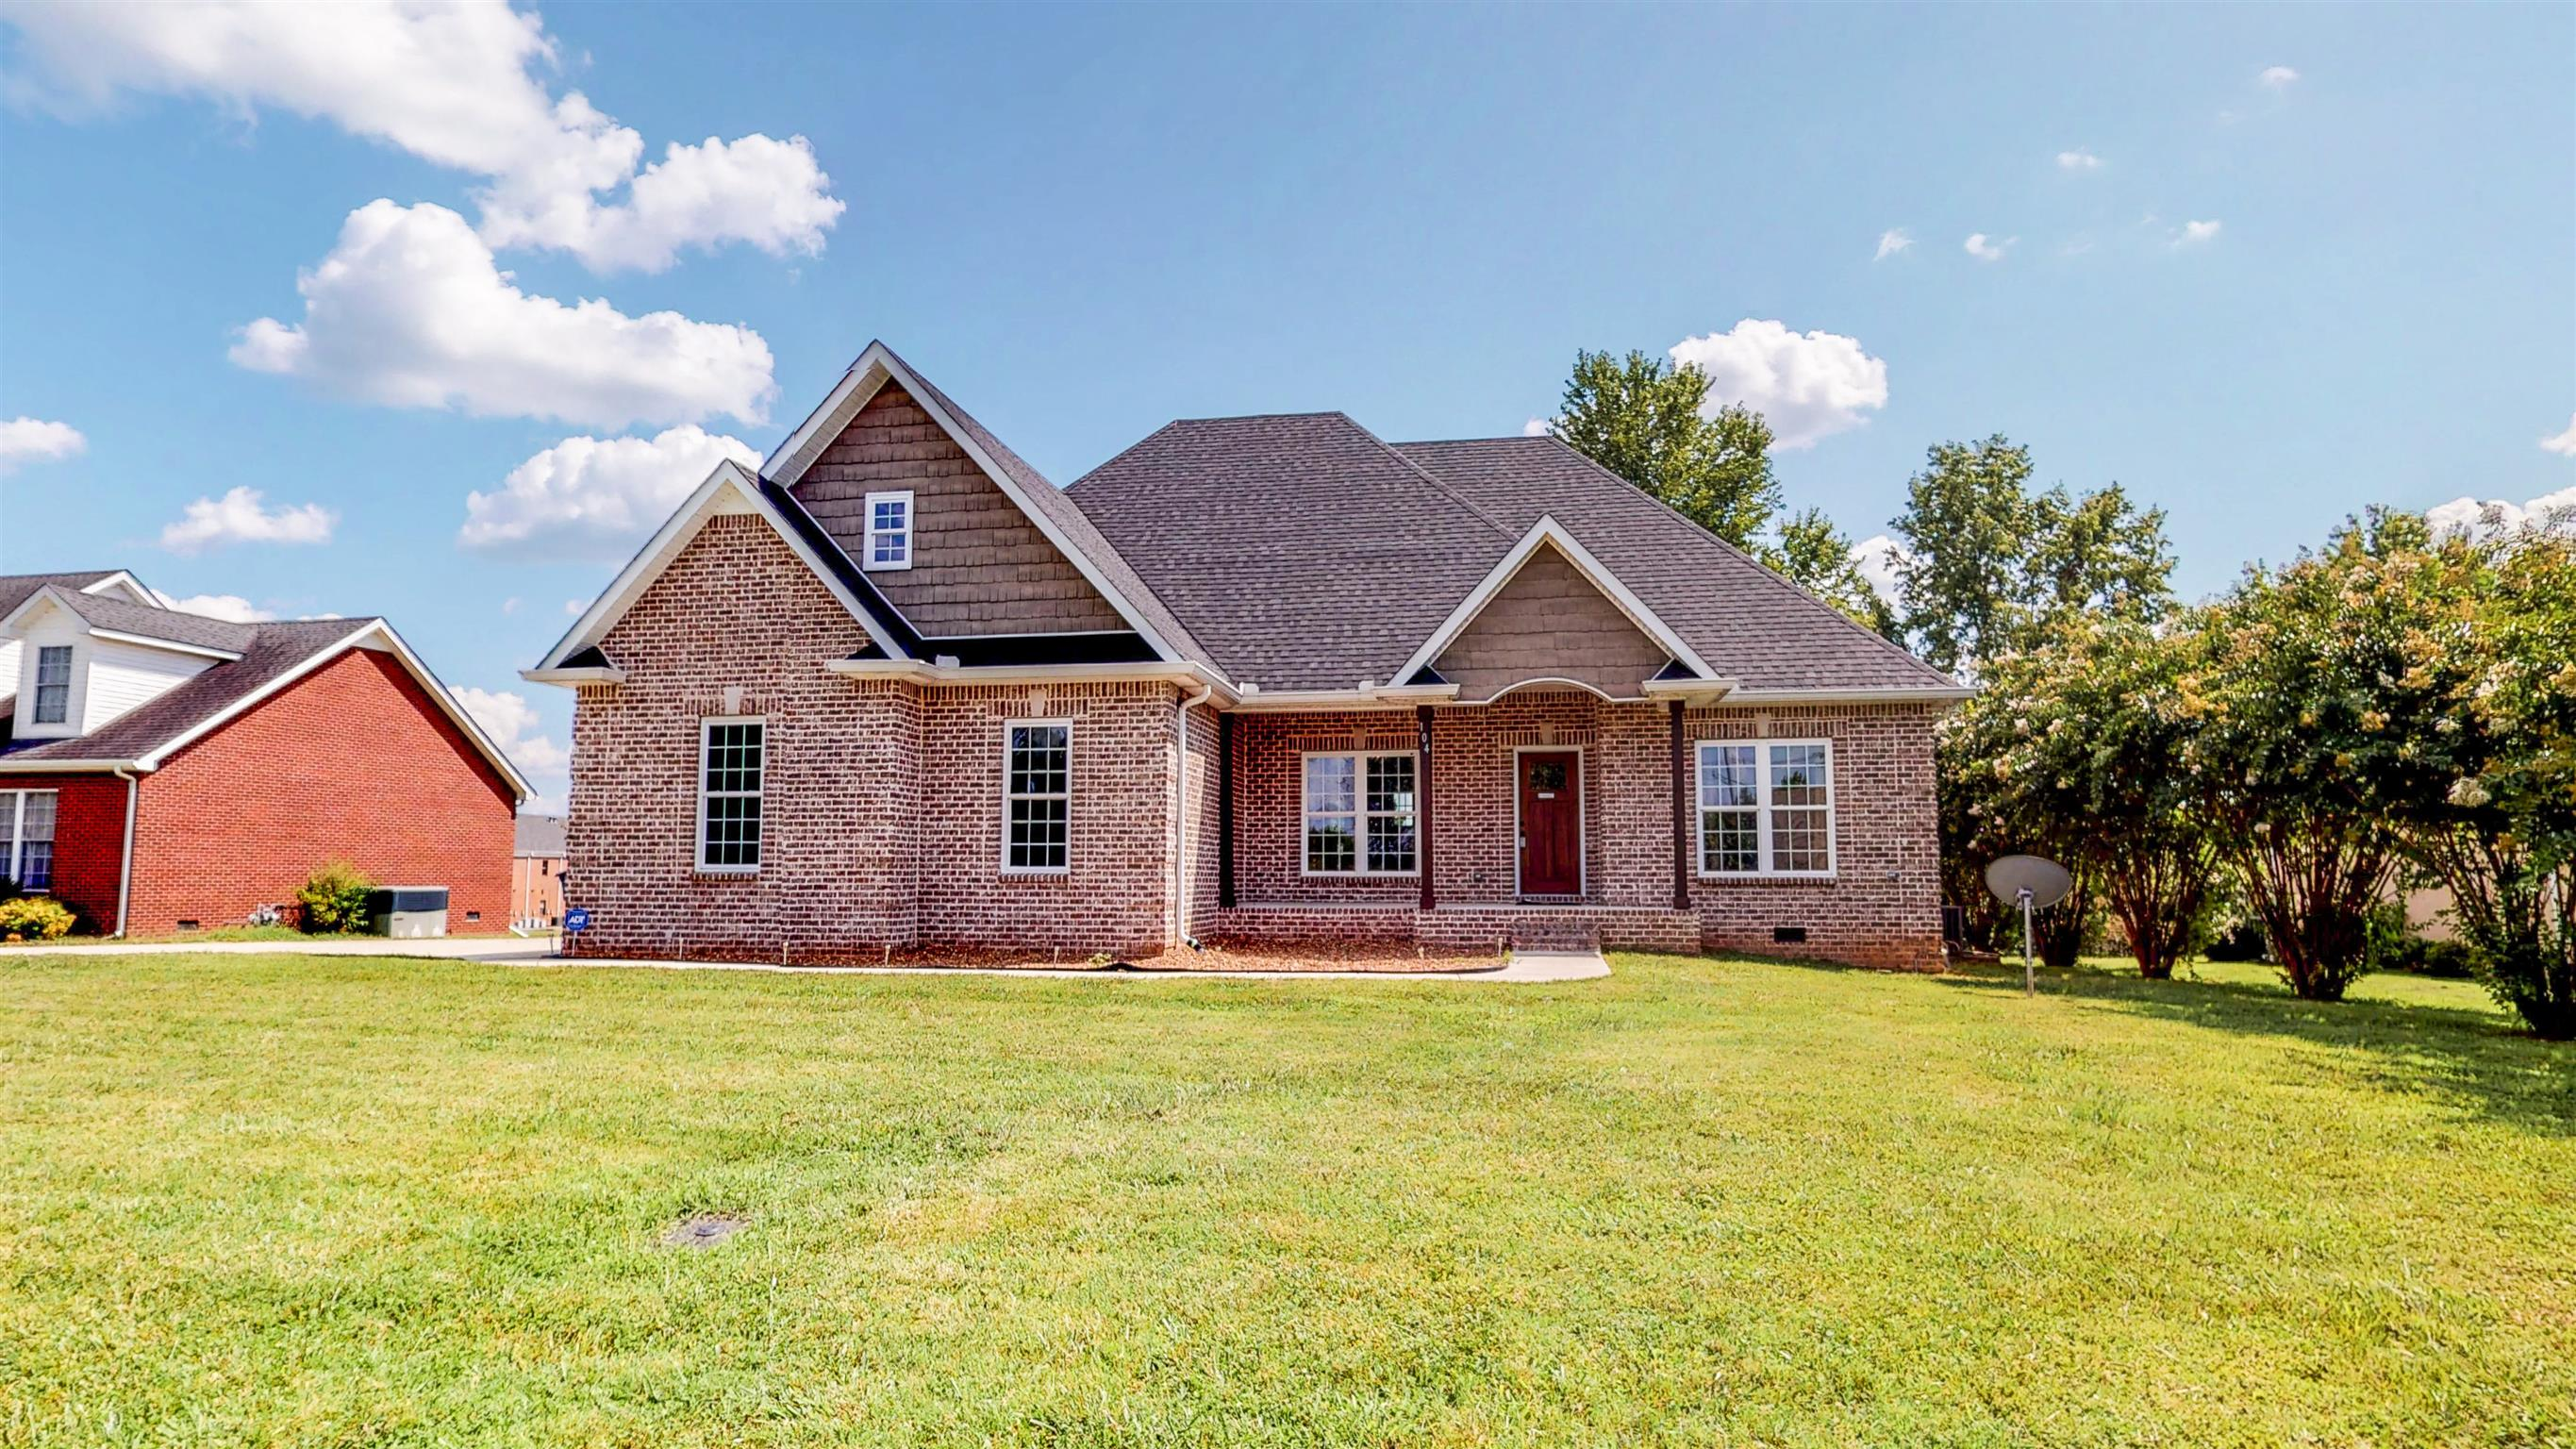 104 Trinity Rd, Shelbyville, TN 37160 - Shelbyville, TN real estate listing